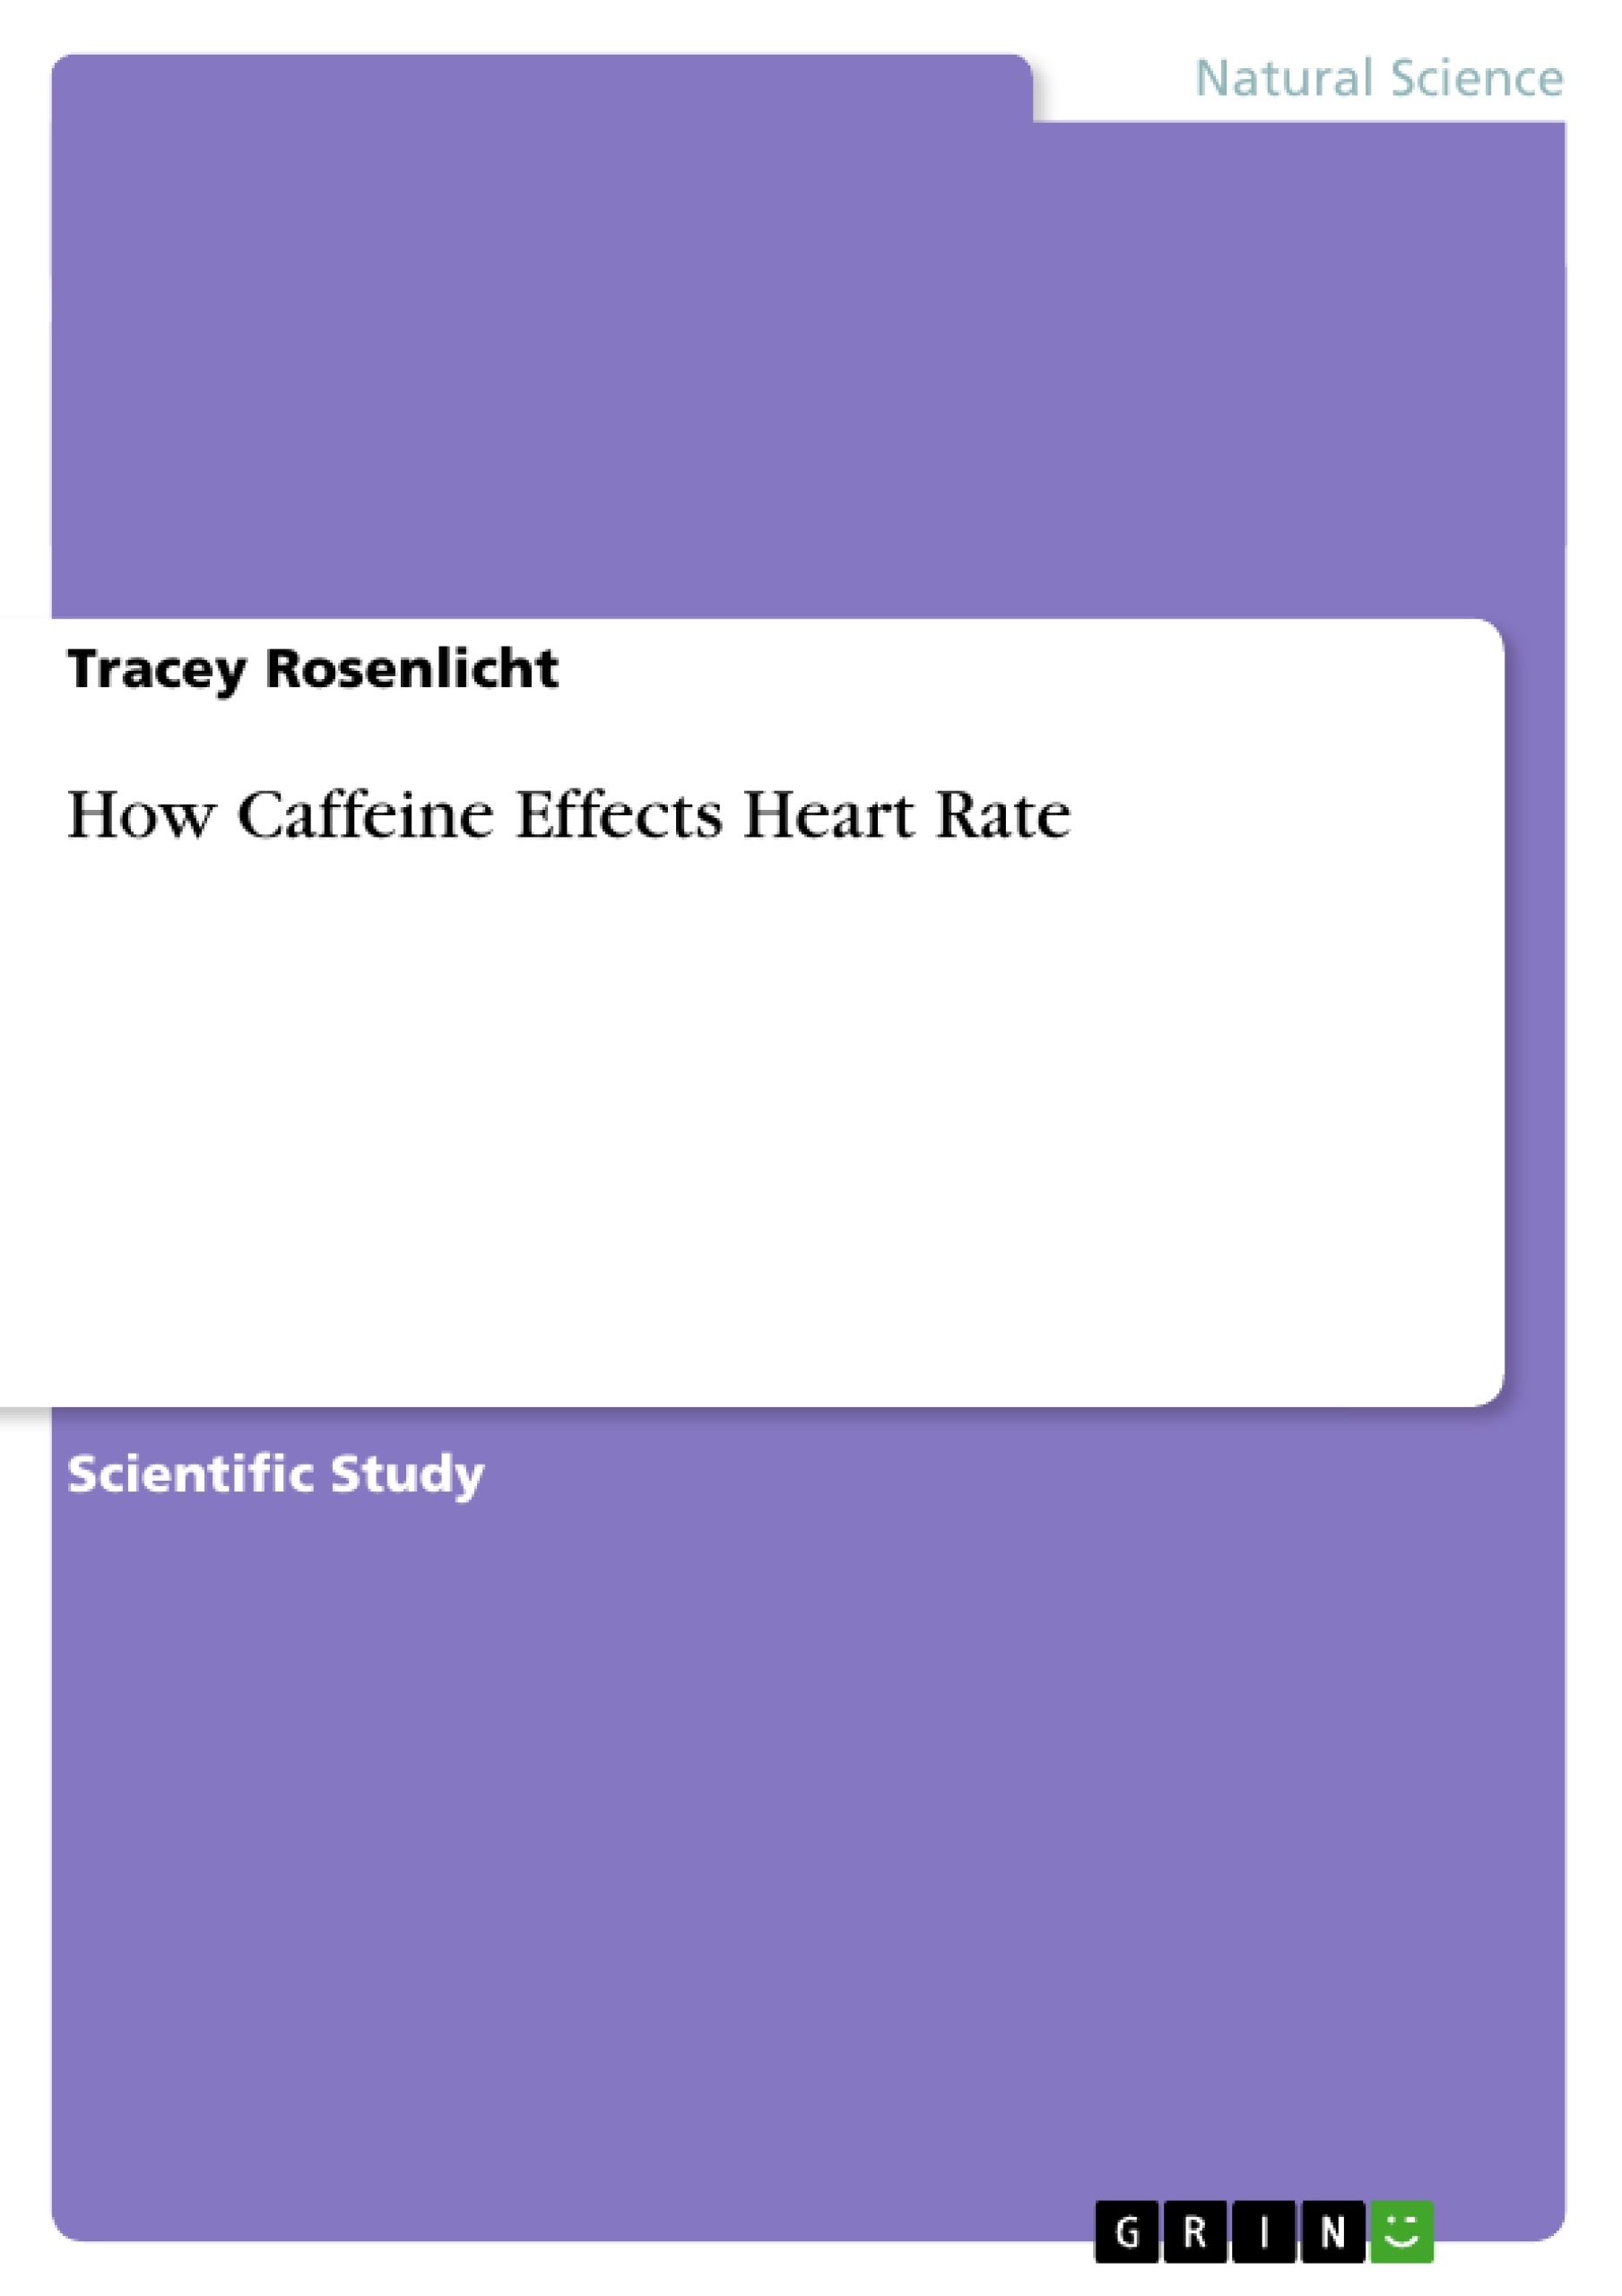 Title: How Caffeine Effects Heart Rate